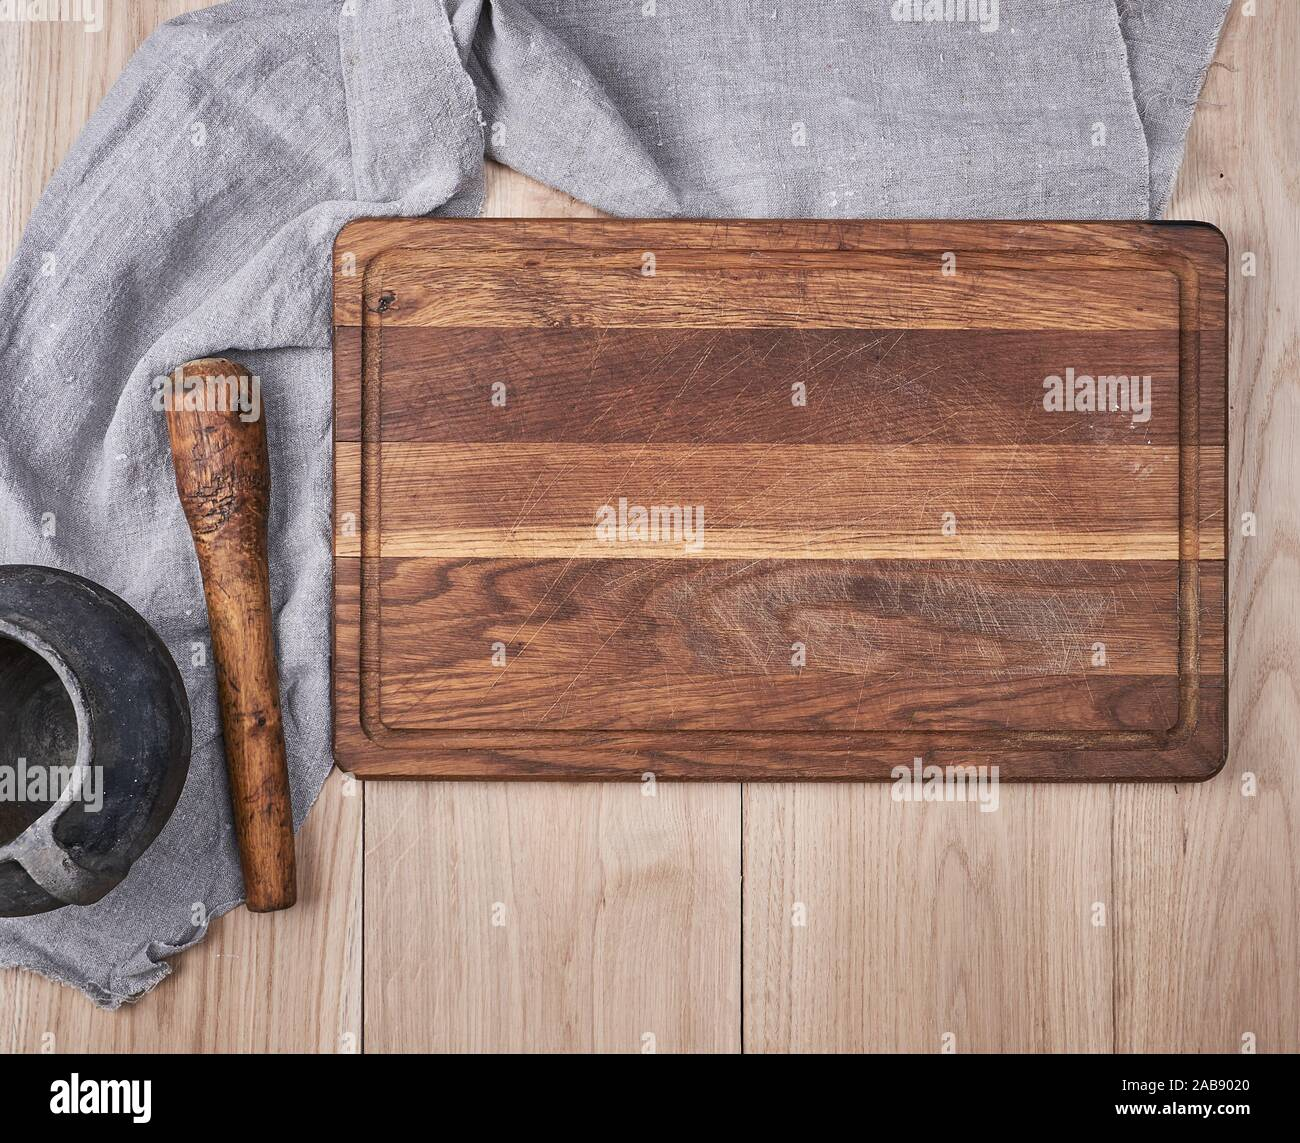 Empty old wooden kitchen cutting board and a gray towel on a table ...